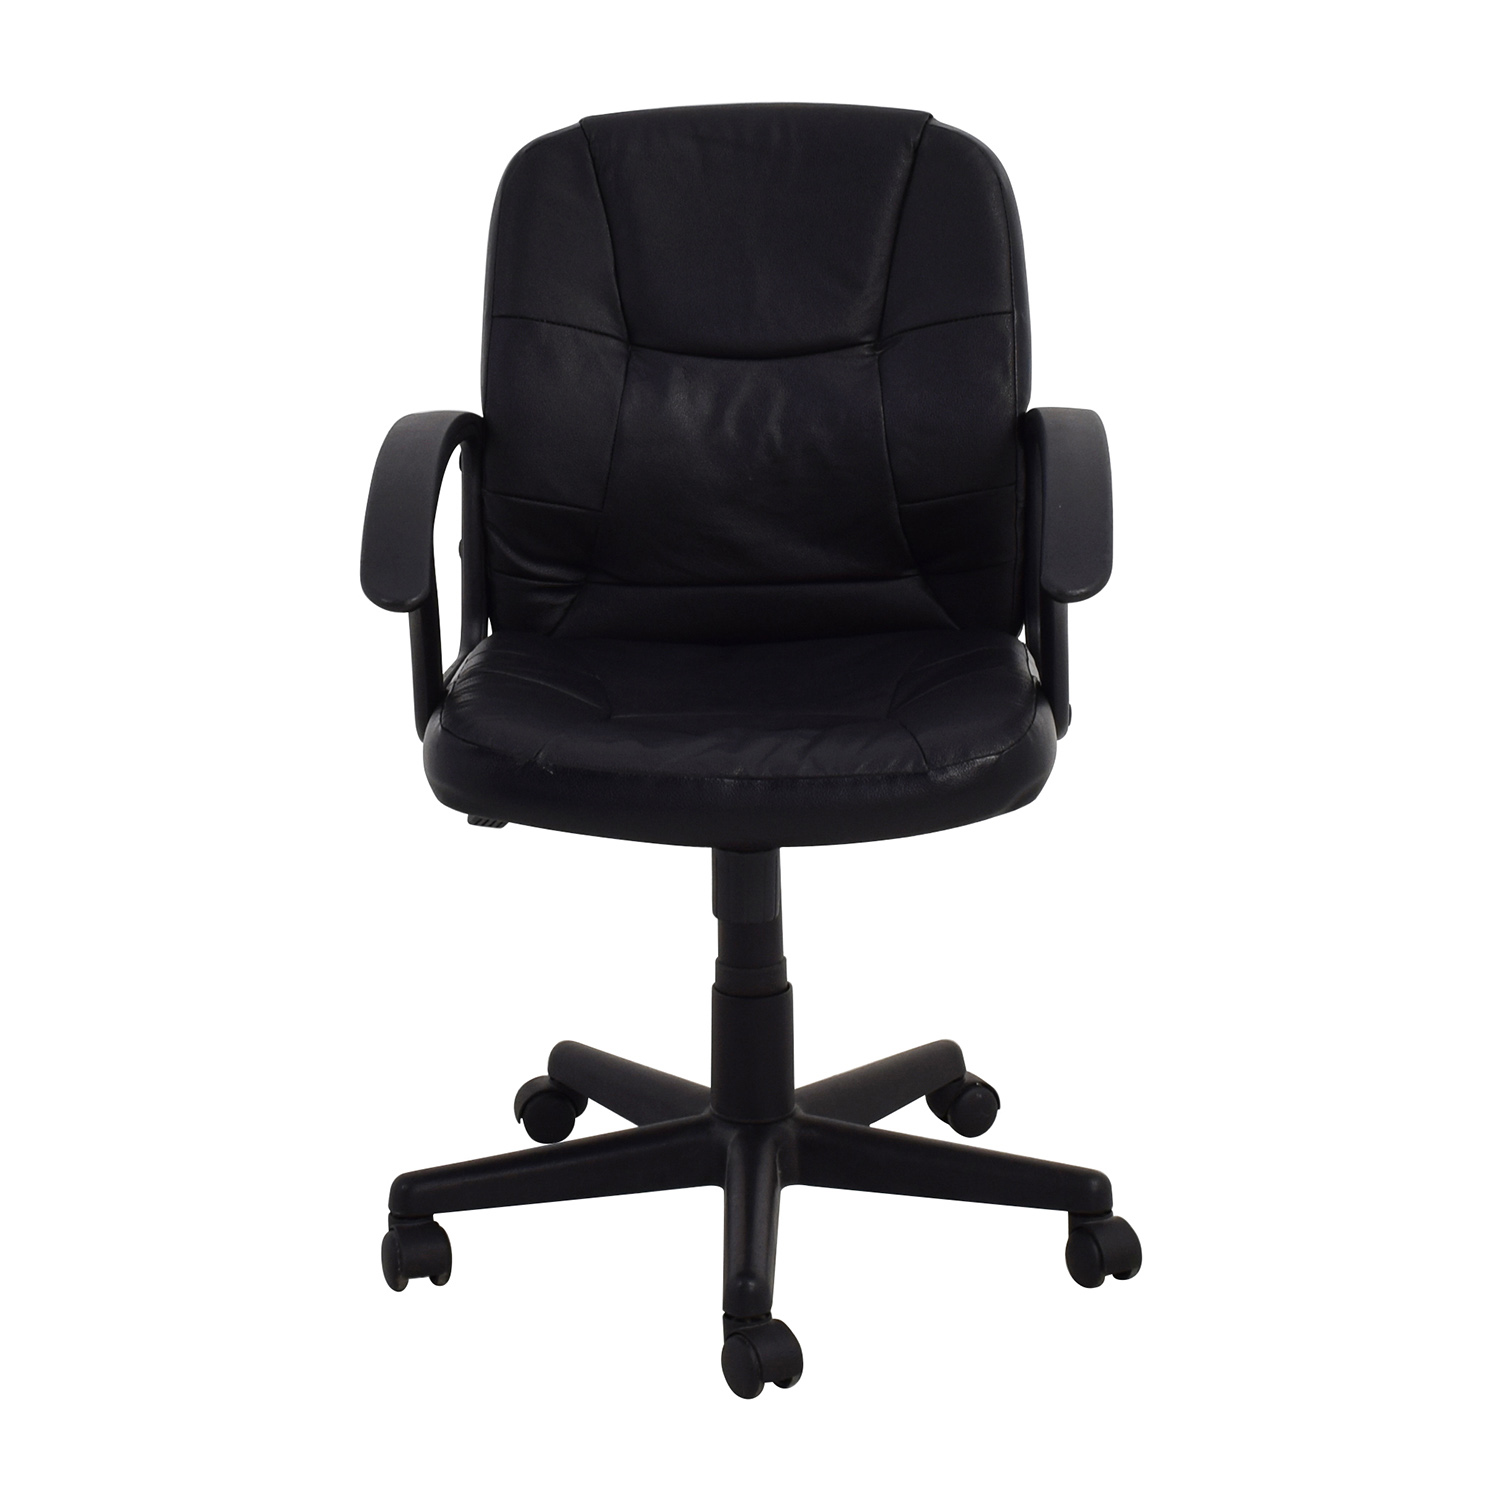 buy  Black Leather Adjustable Desk Chair online